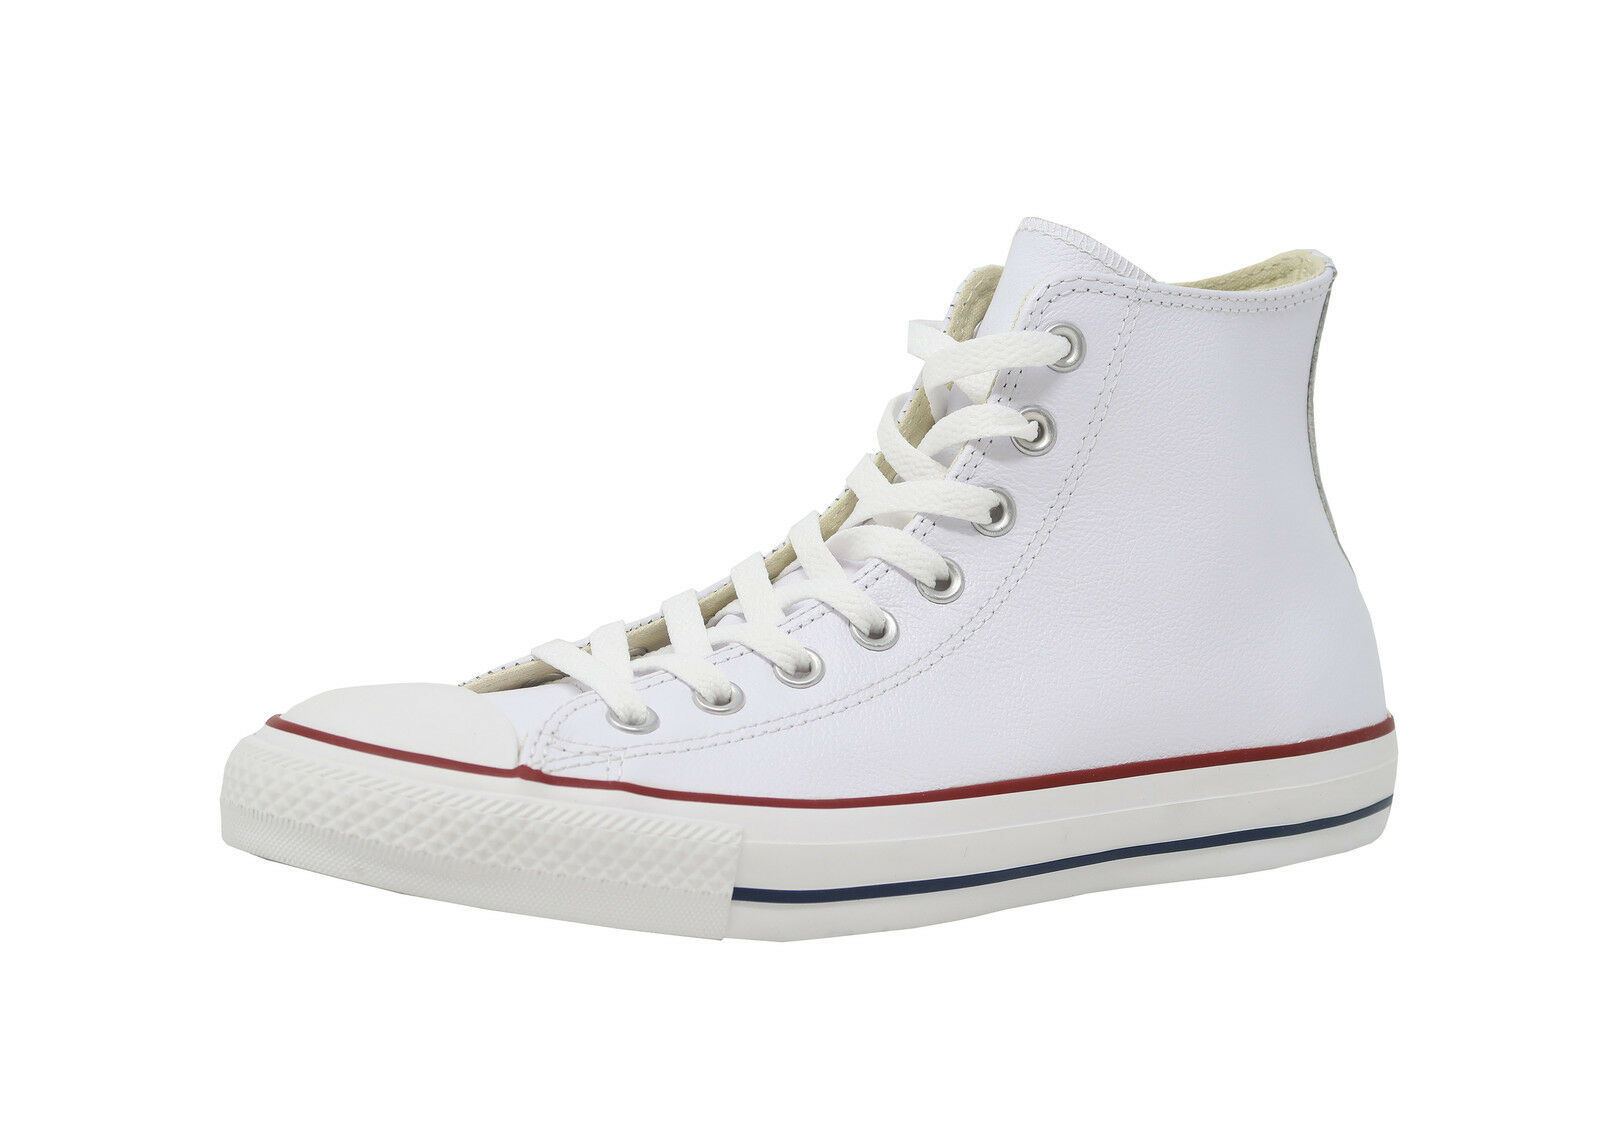 CONVERSE All Star Chuck Taylor Hi Top White Leather Red Sneakers Adult Men shoes